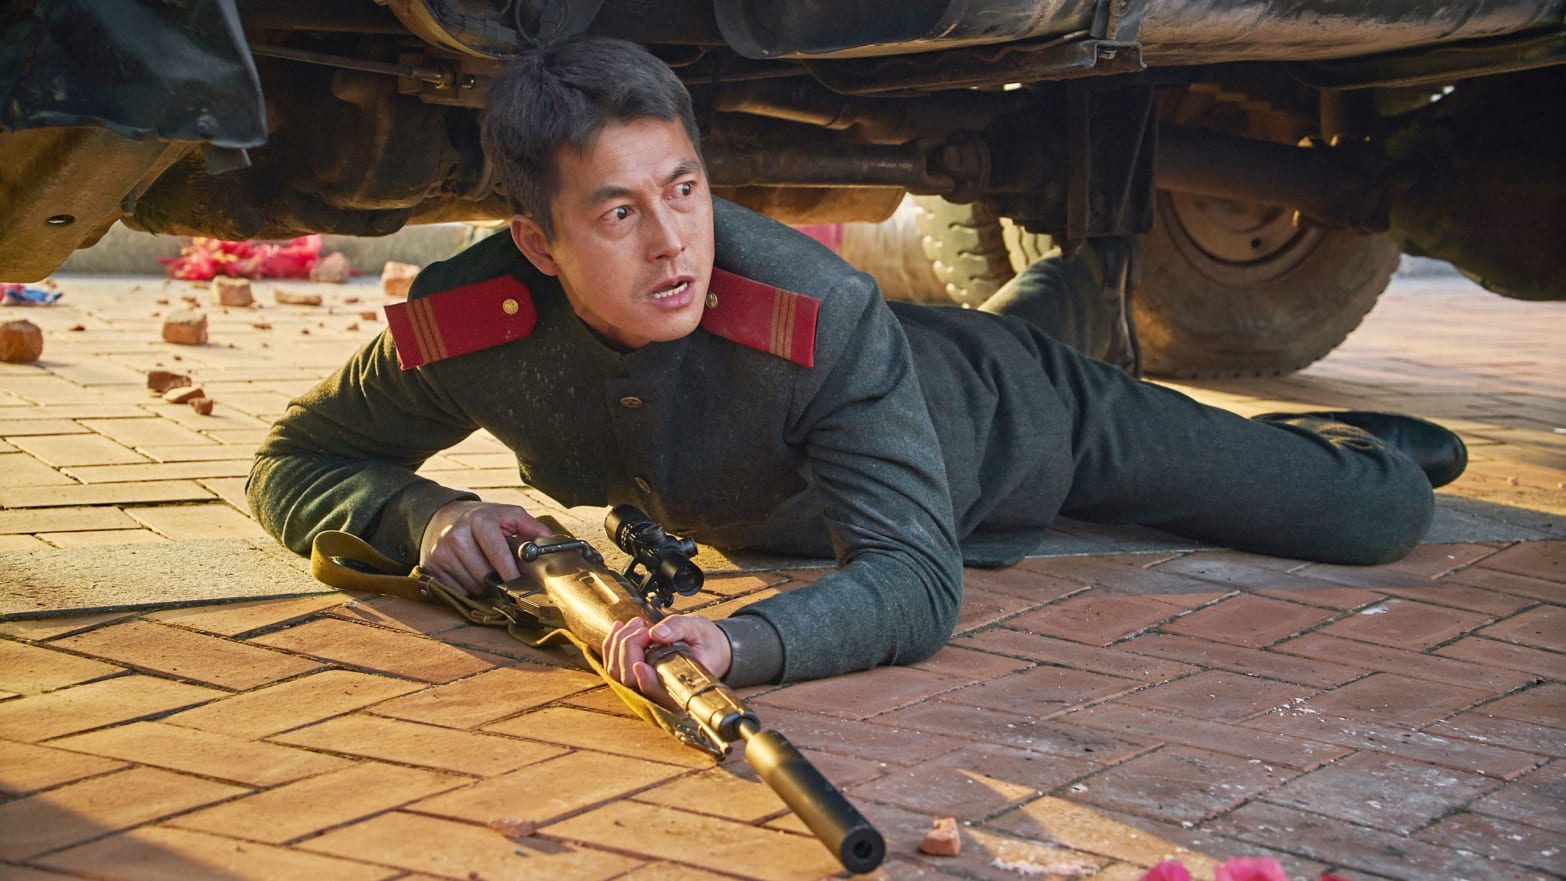 Steel Rain: The Korean Nuke Movie Crazier Than Real Life